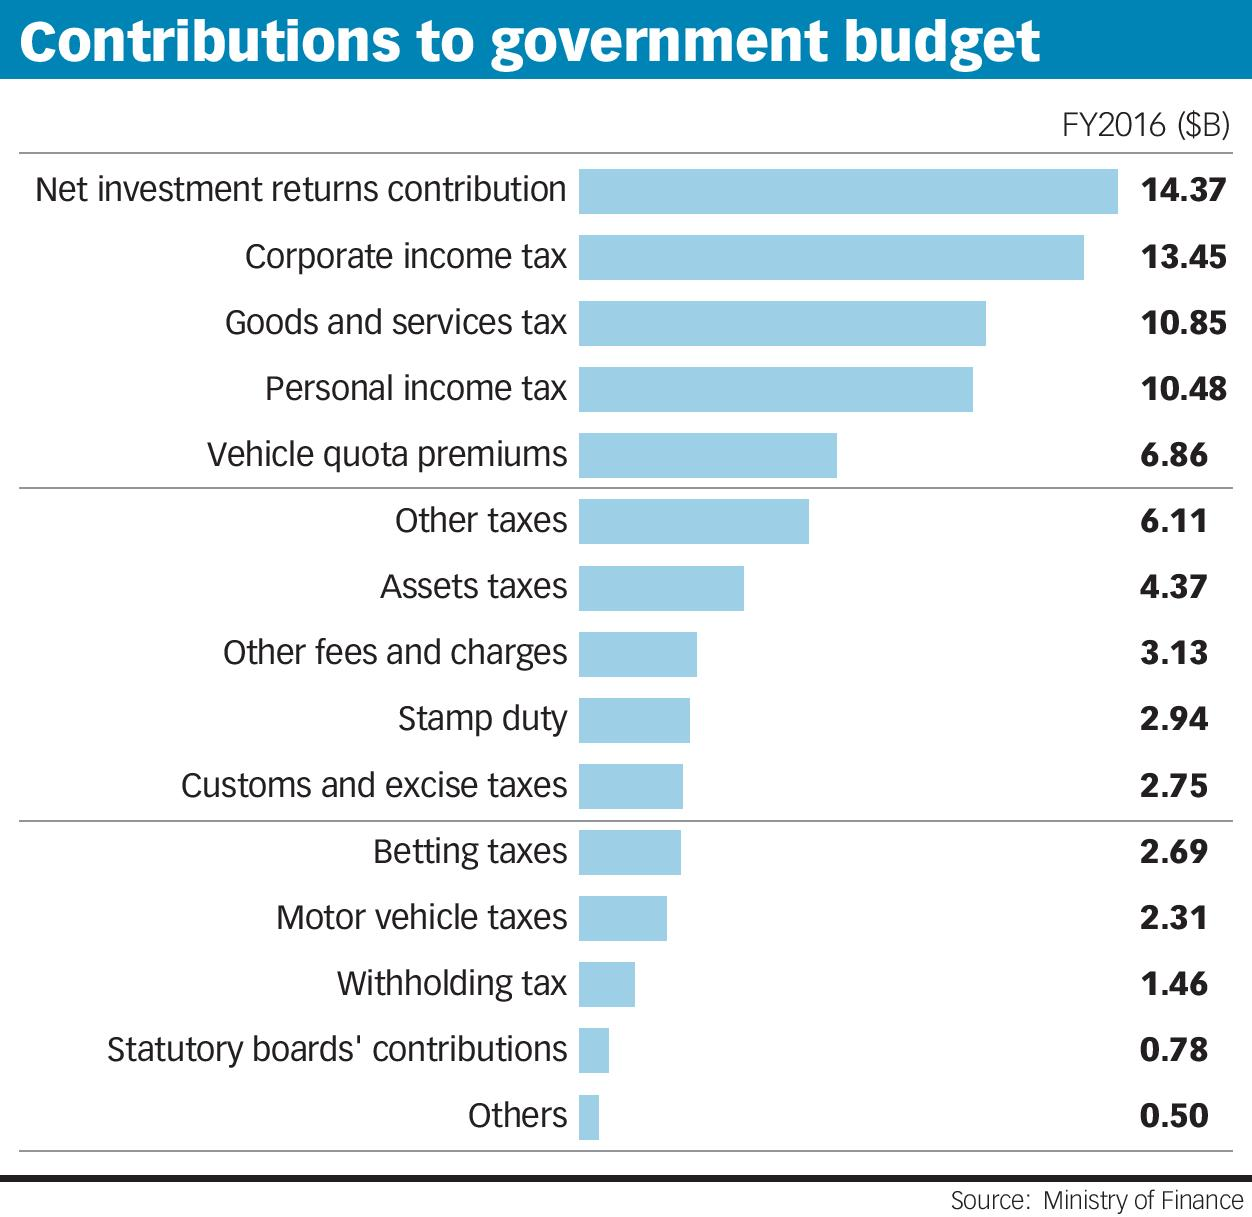 Contributions to government budget